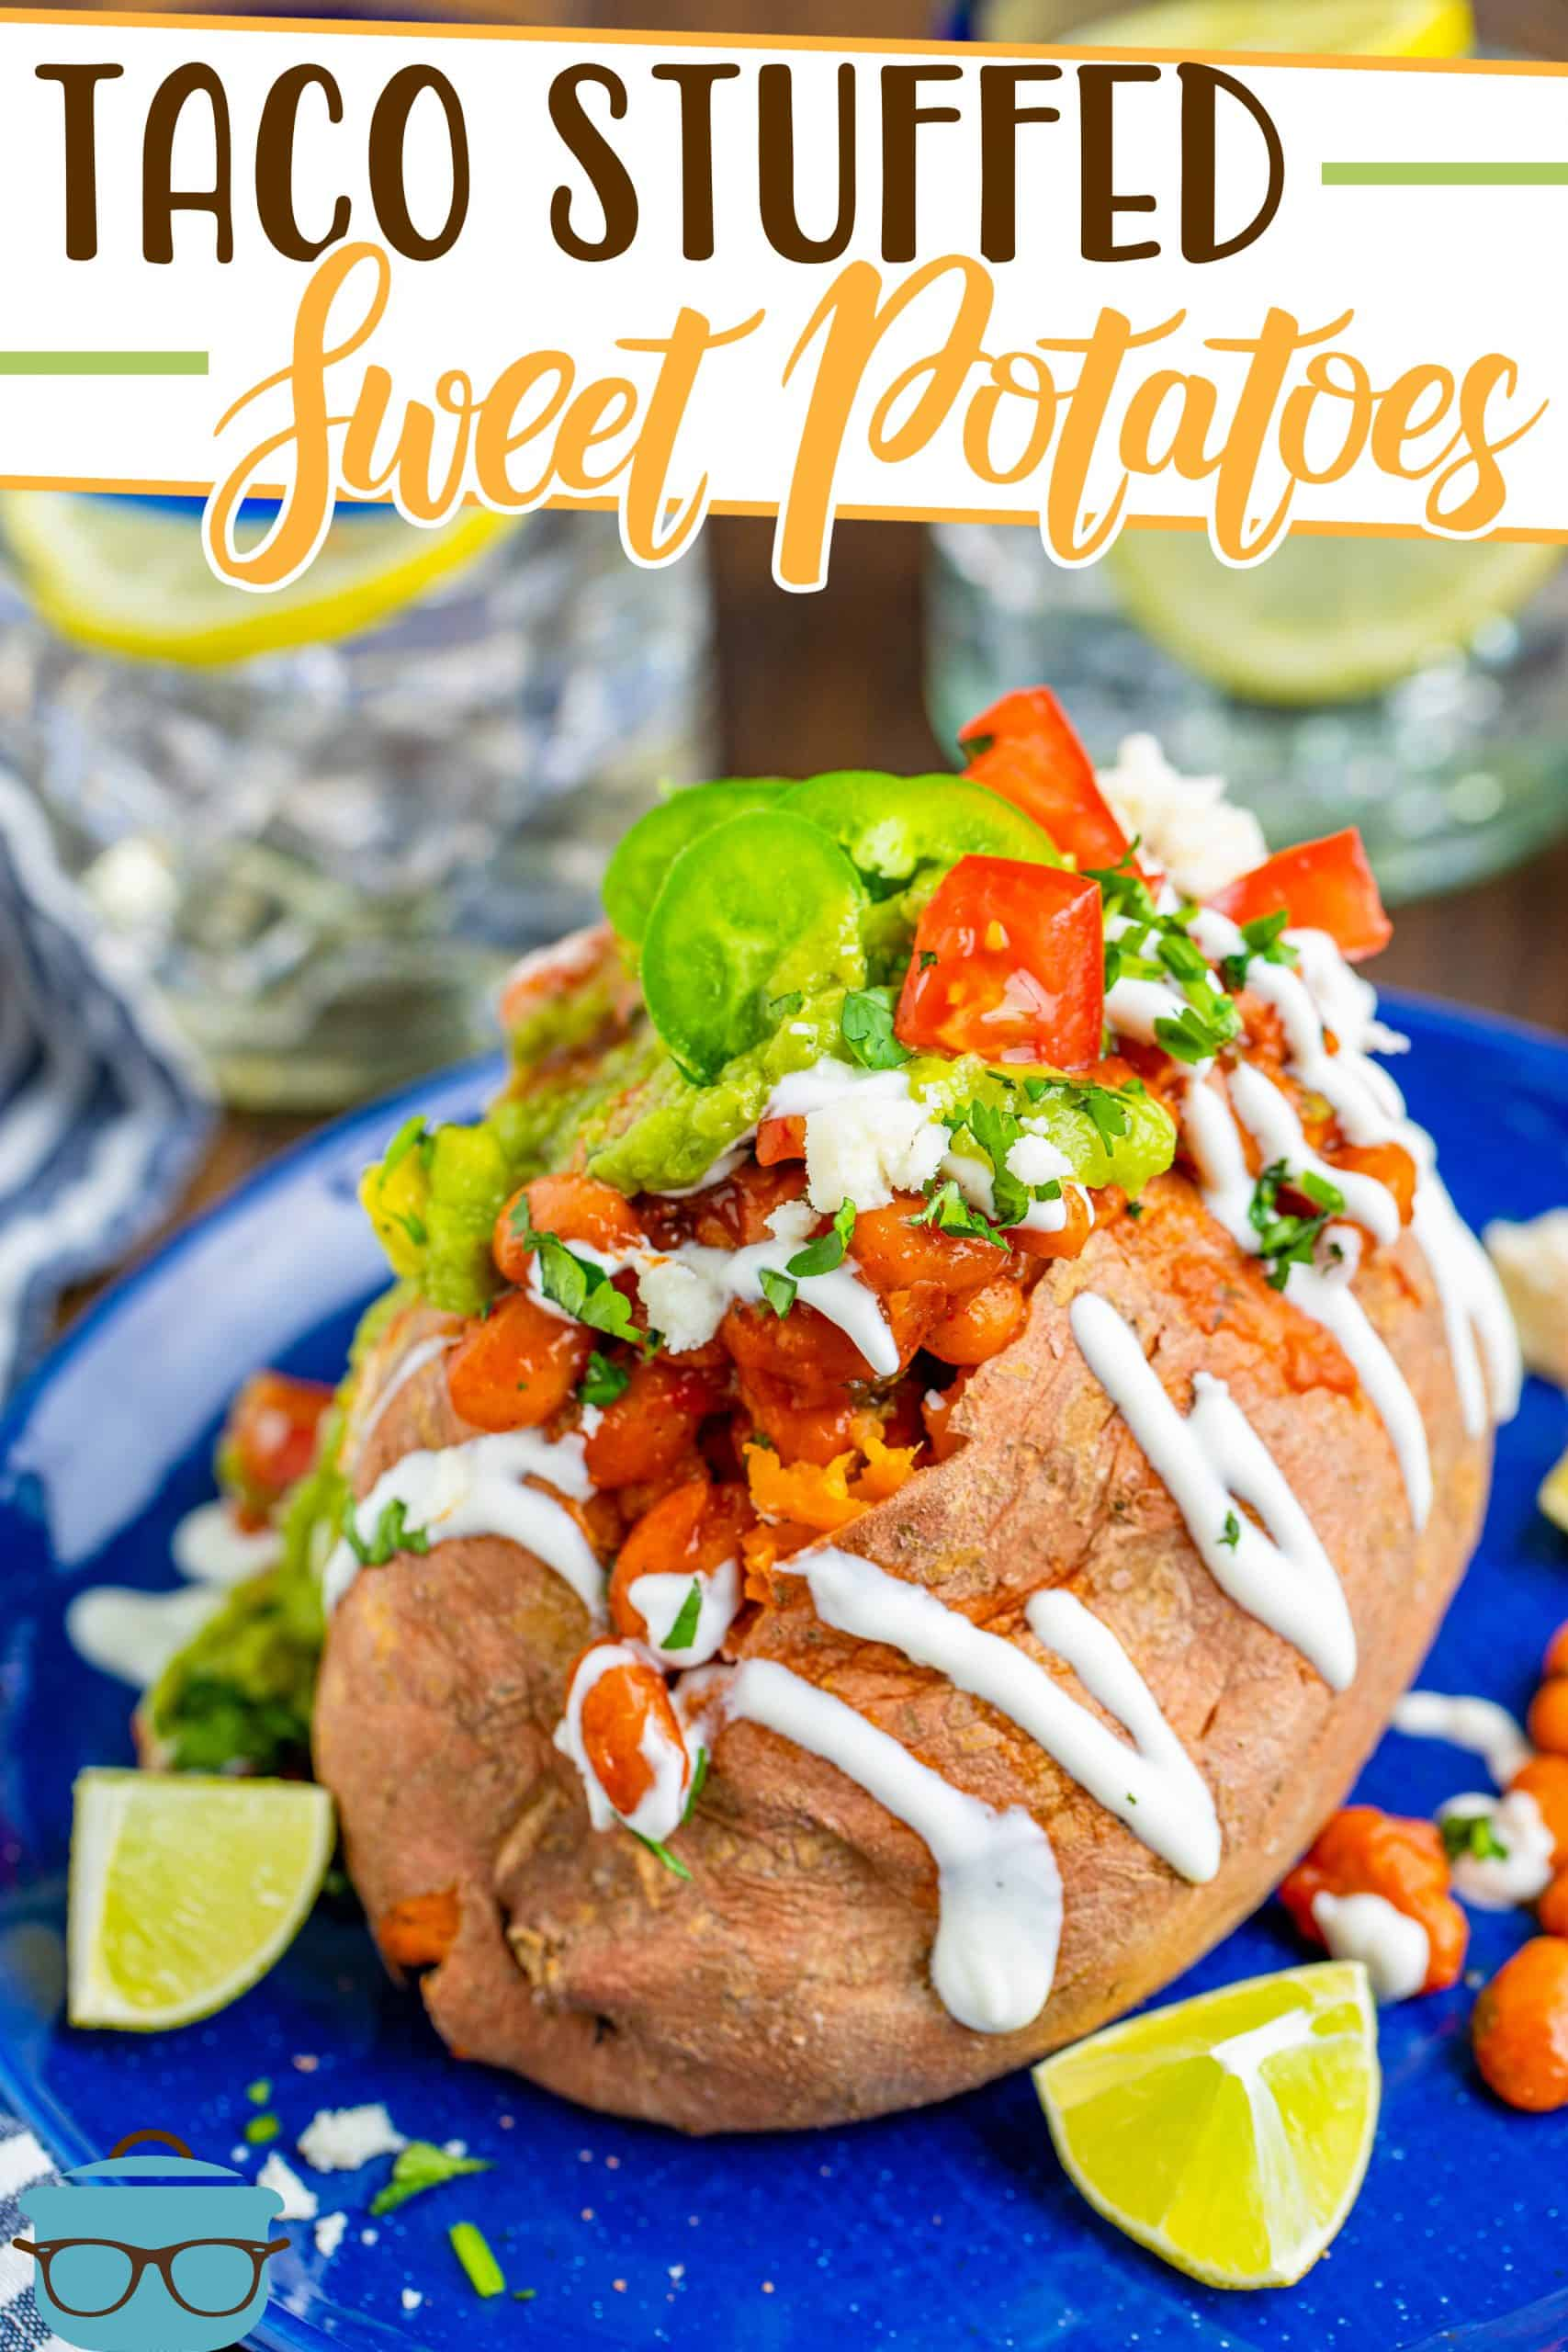 These vegetarian Taco Stuffed Sweet Potatoes are a whole meal! Taco seasoned pinto beans and salsa stuffed into a tender baked sweet potato!